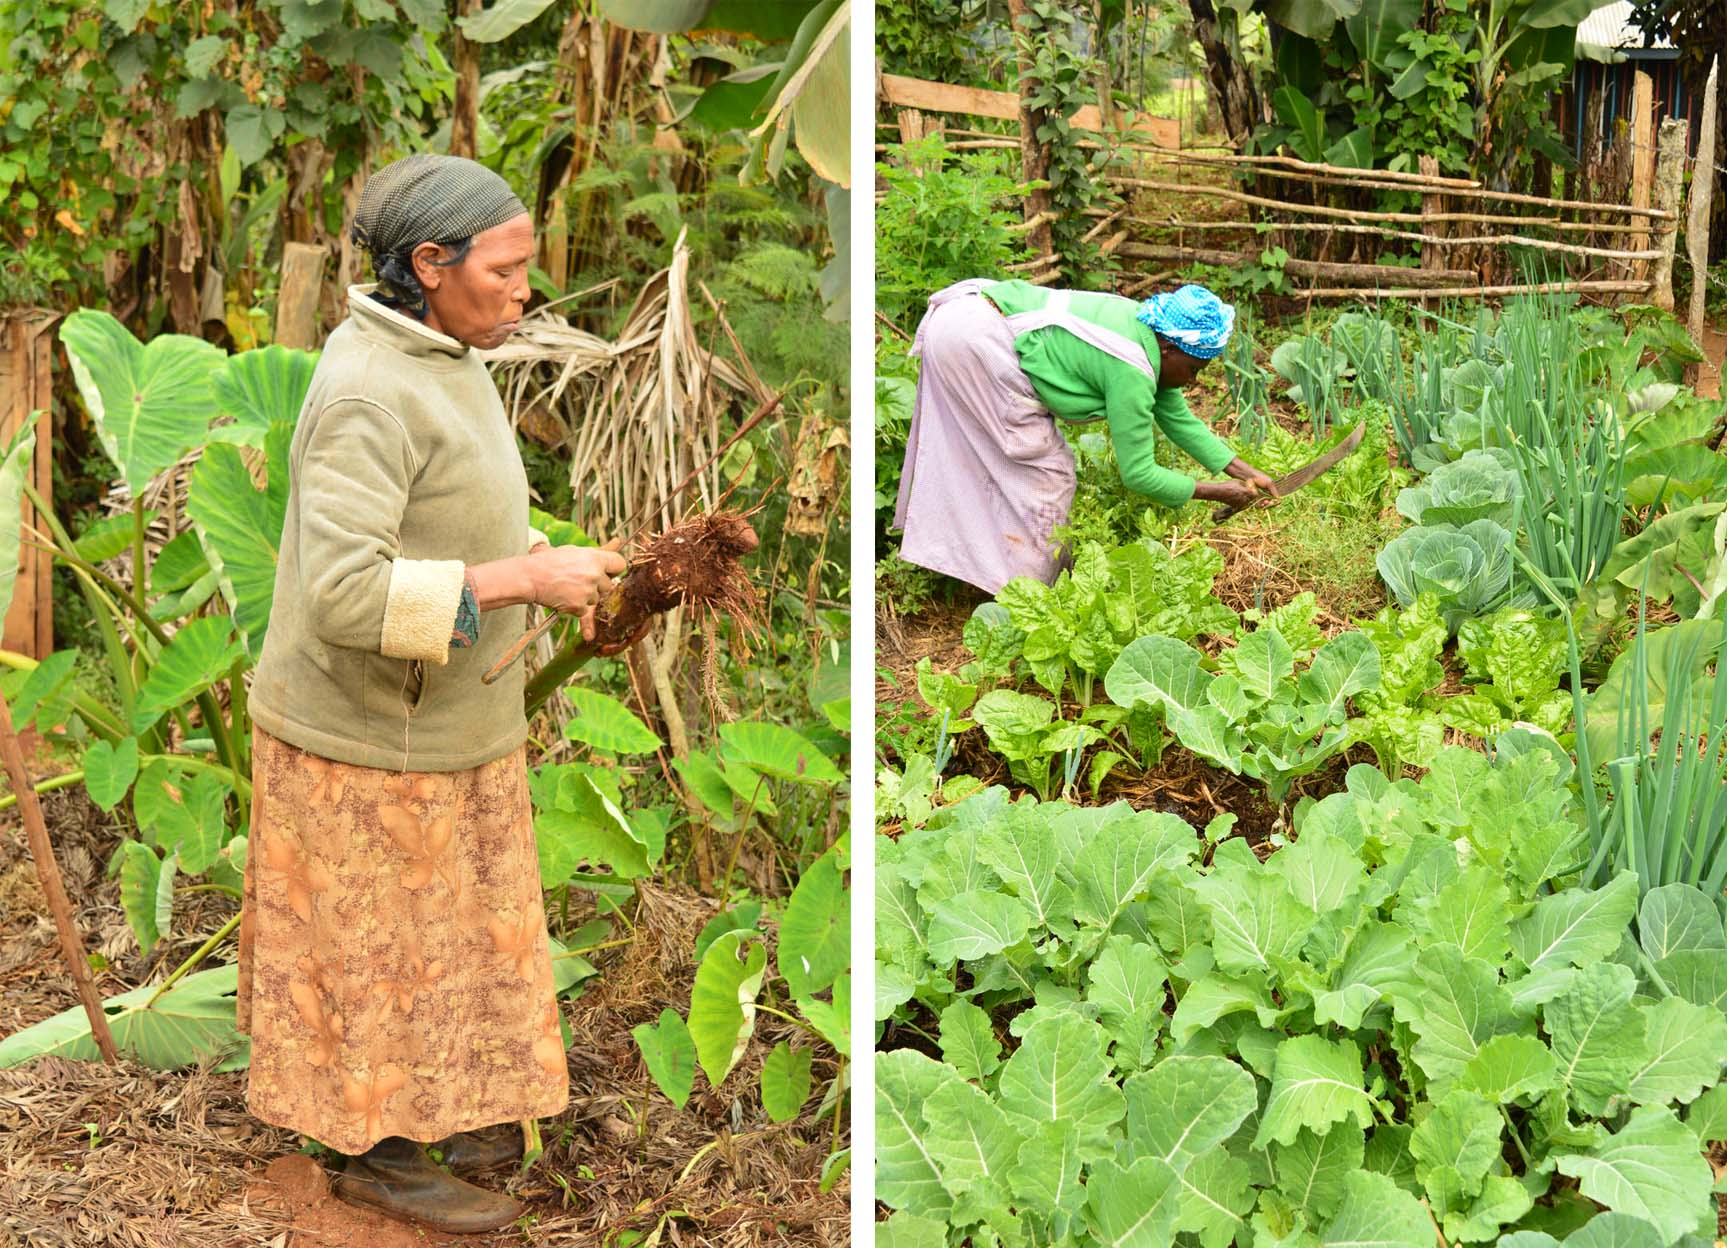 One of the women harvests some arrow roots from her farm, while another tends to her kitchen garden